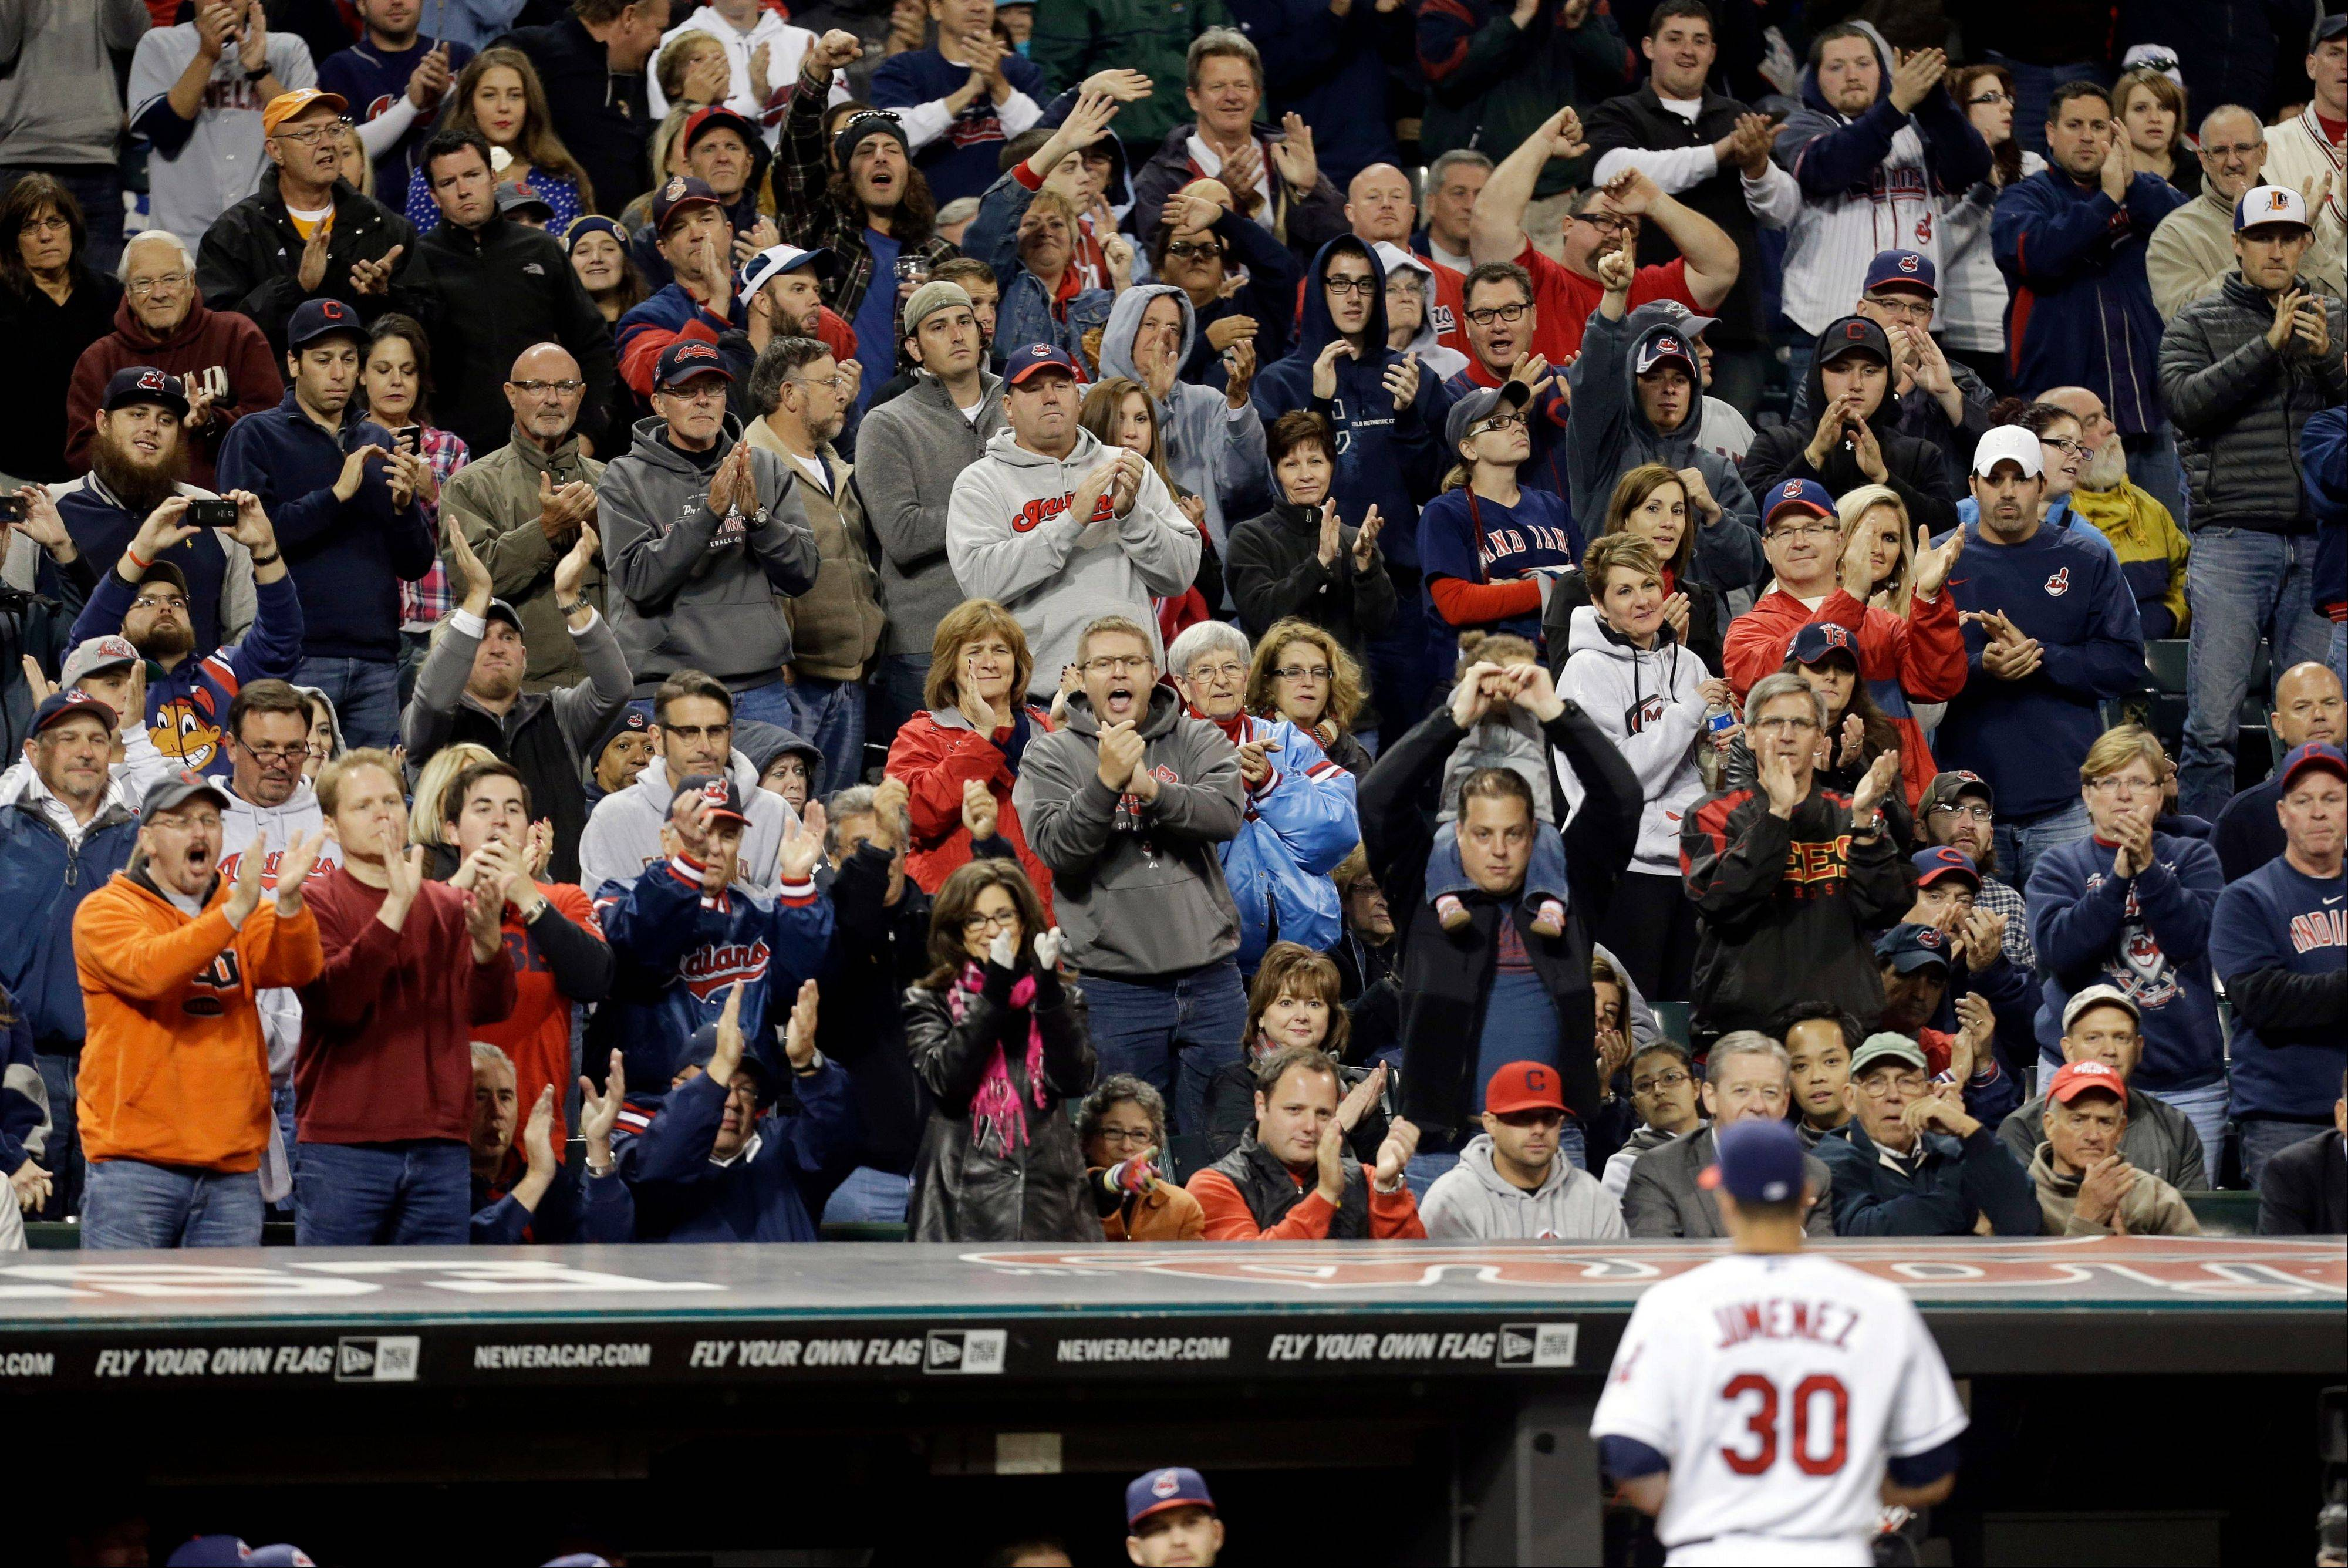 Cleveland Indians fans cheer as starting pitcher Ubaldo Jimenez walks to the dugout in the seventh inning of a baseball game, Tuesday, Sept. 24, 2013, in Cleveland. Jimenez pitched 6 1/3 innings and gave up five hits and two runs.